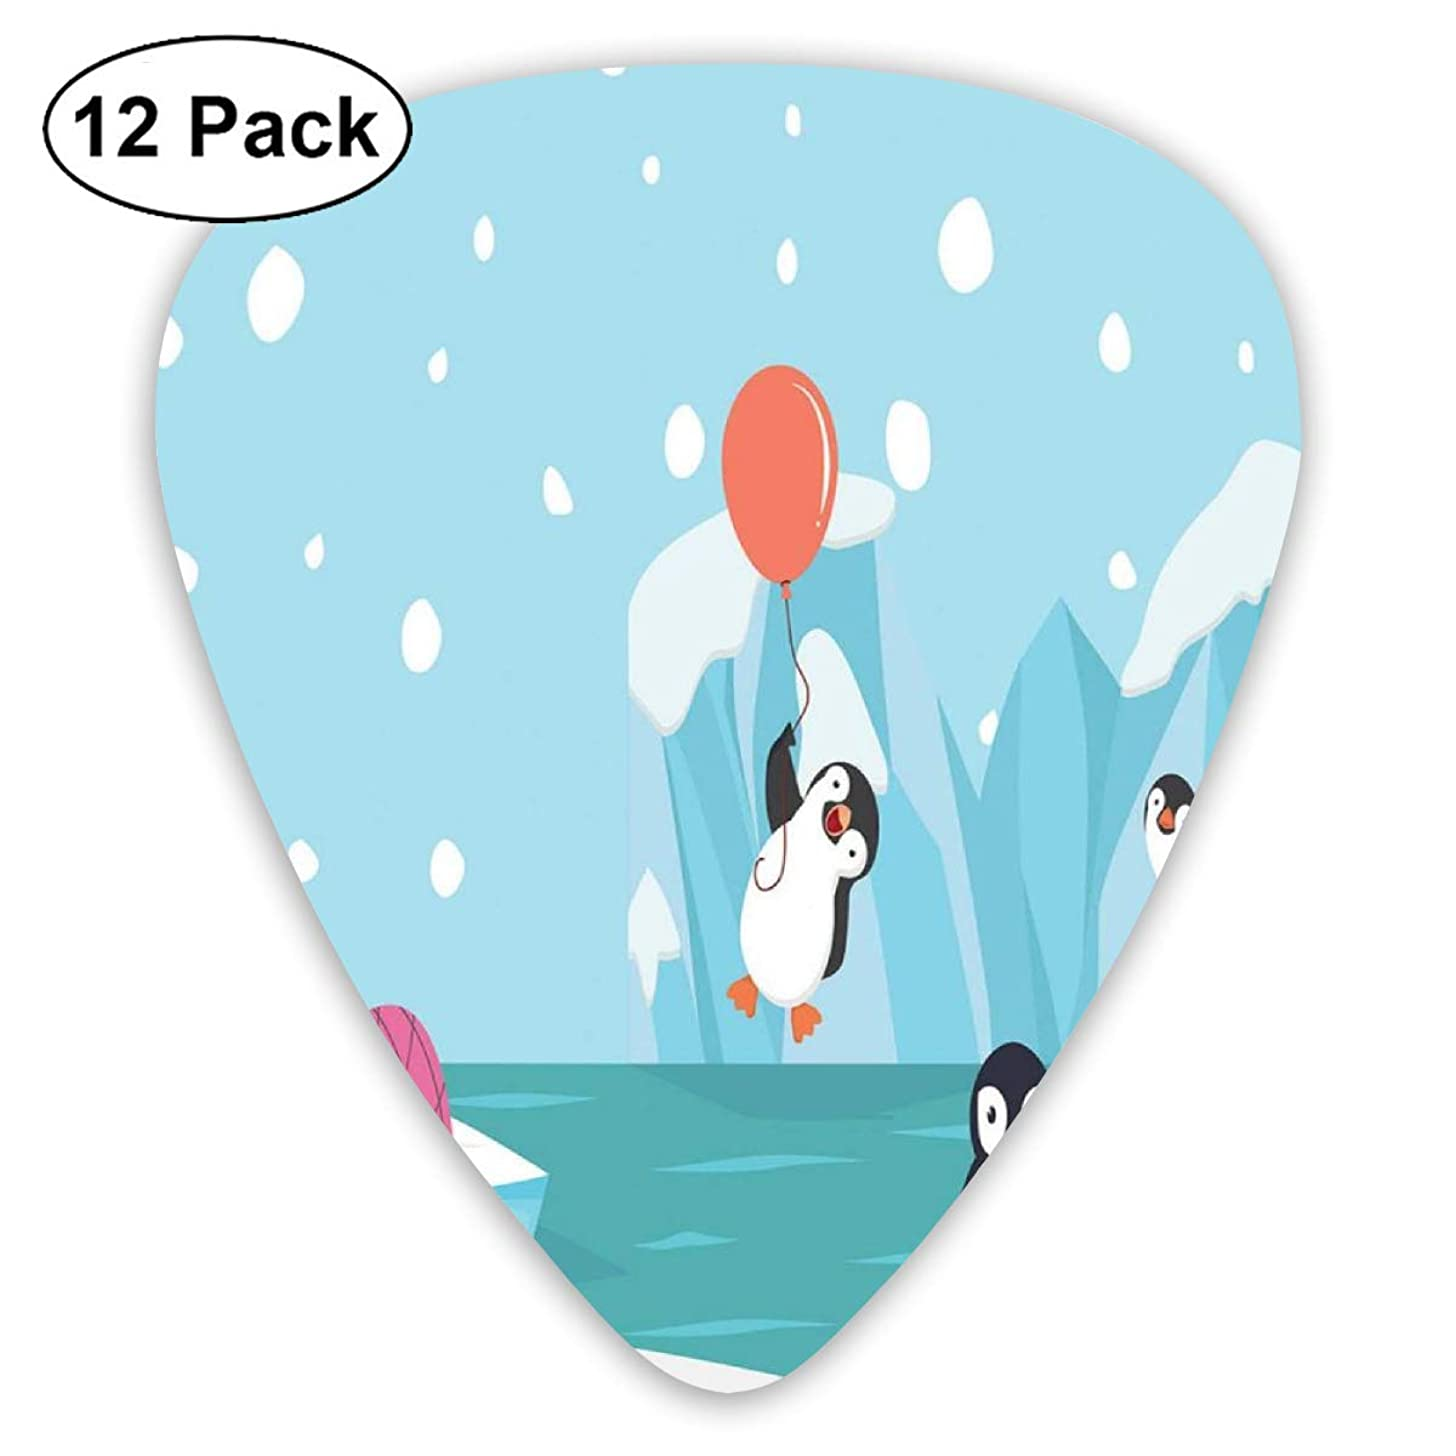 Celluloid Guitar Picks - 12 Pack,Abstract Art Colorful Designs,Lovely Penguins On Ice Glaciers Cute Funny Animal Characters Print,For Bass Electric & Acoustic Guitars.